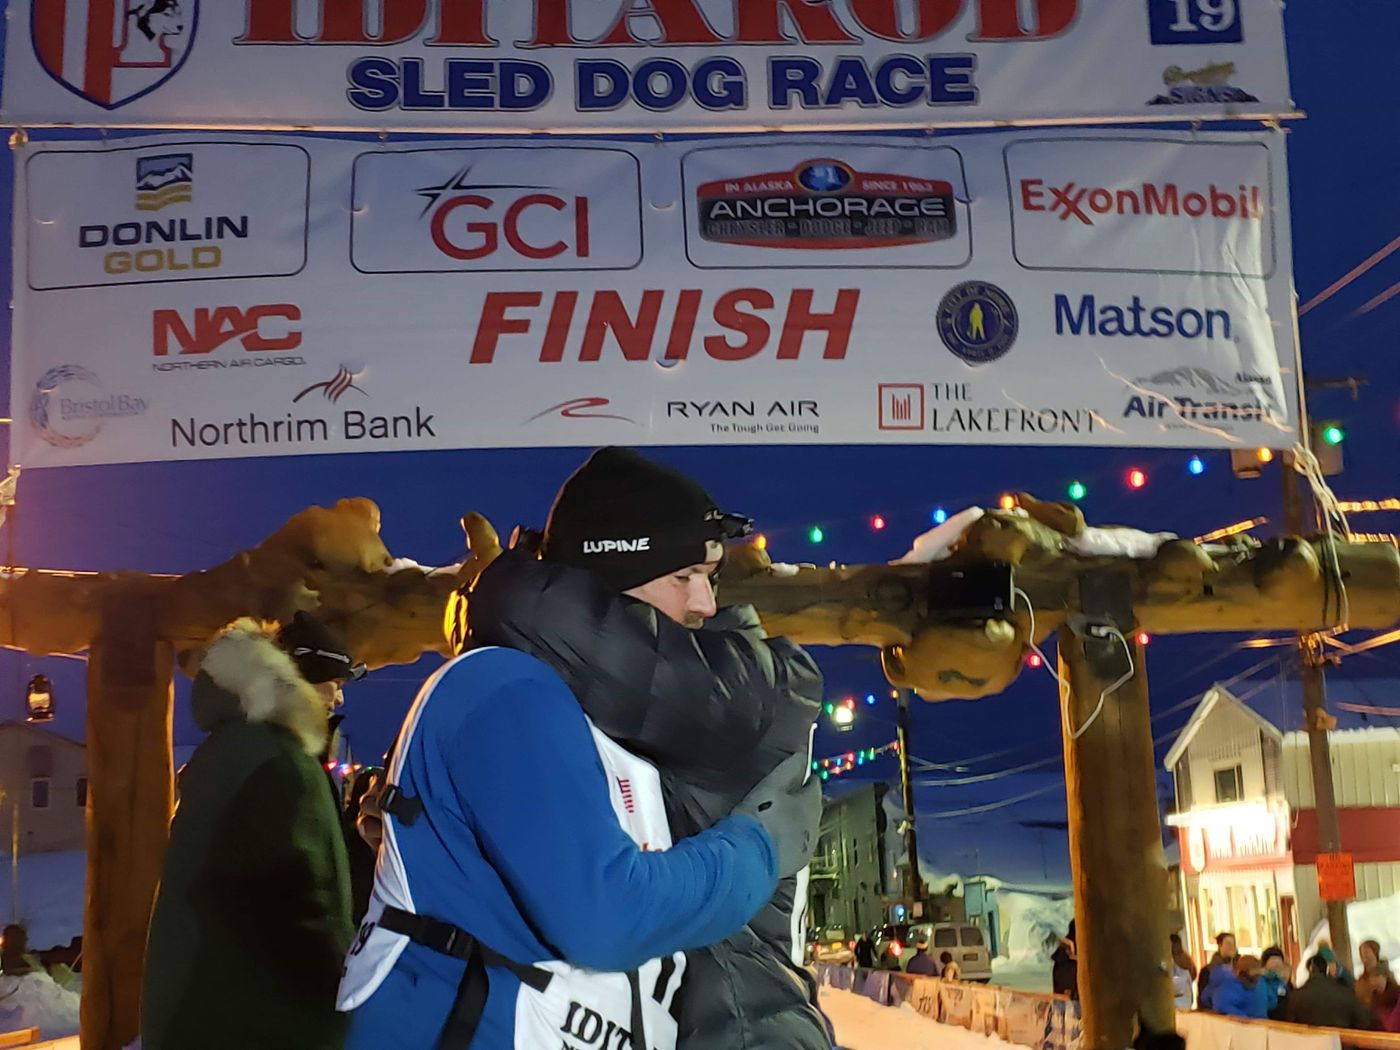 Jason Campeau, left, hugs his brother Jody Campeau at the finish line of the Iditarod in Nome on March 25, 2019. (Jody Campeau photo)